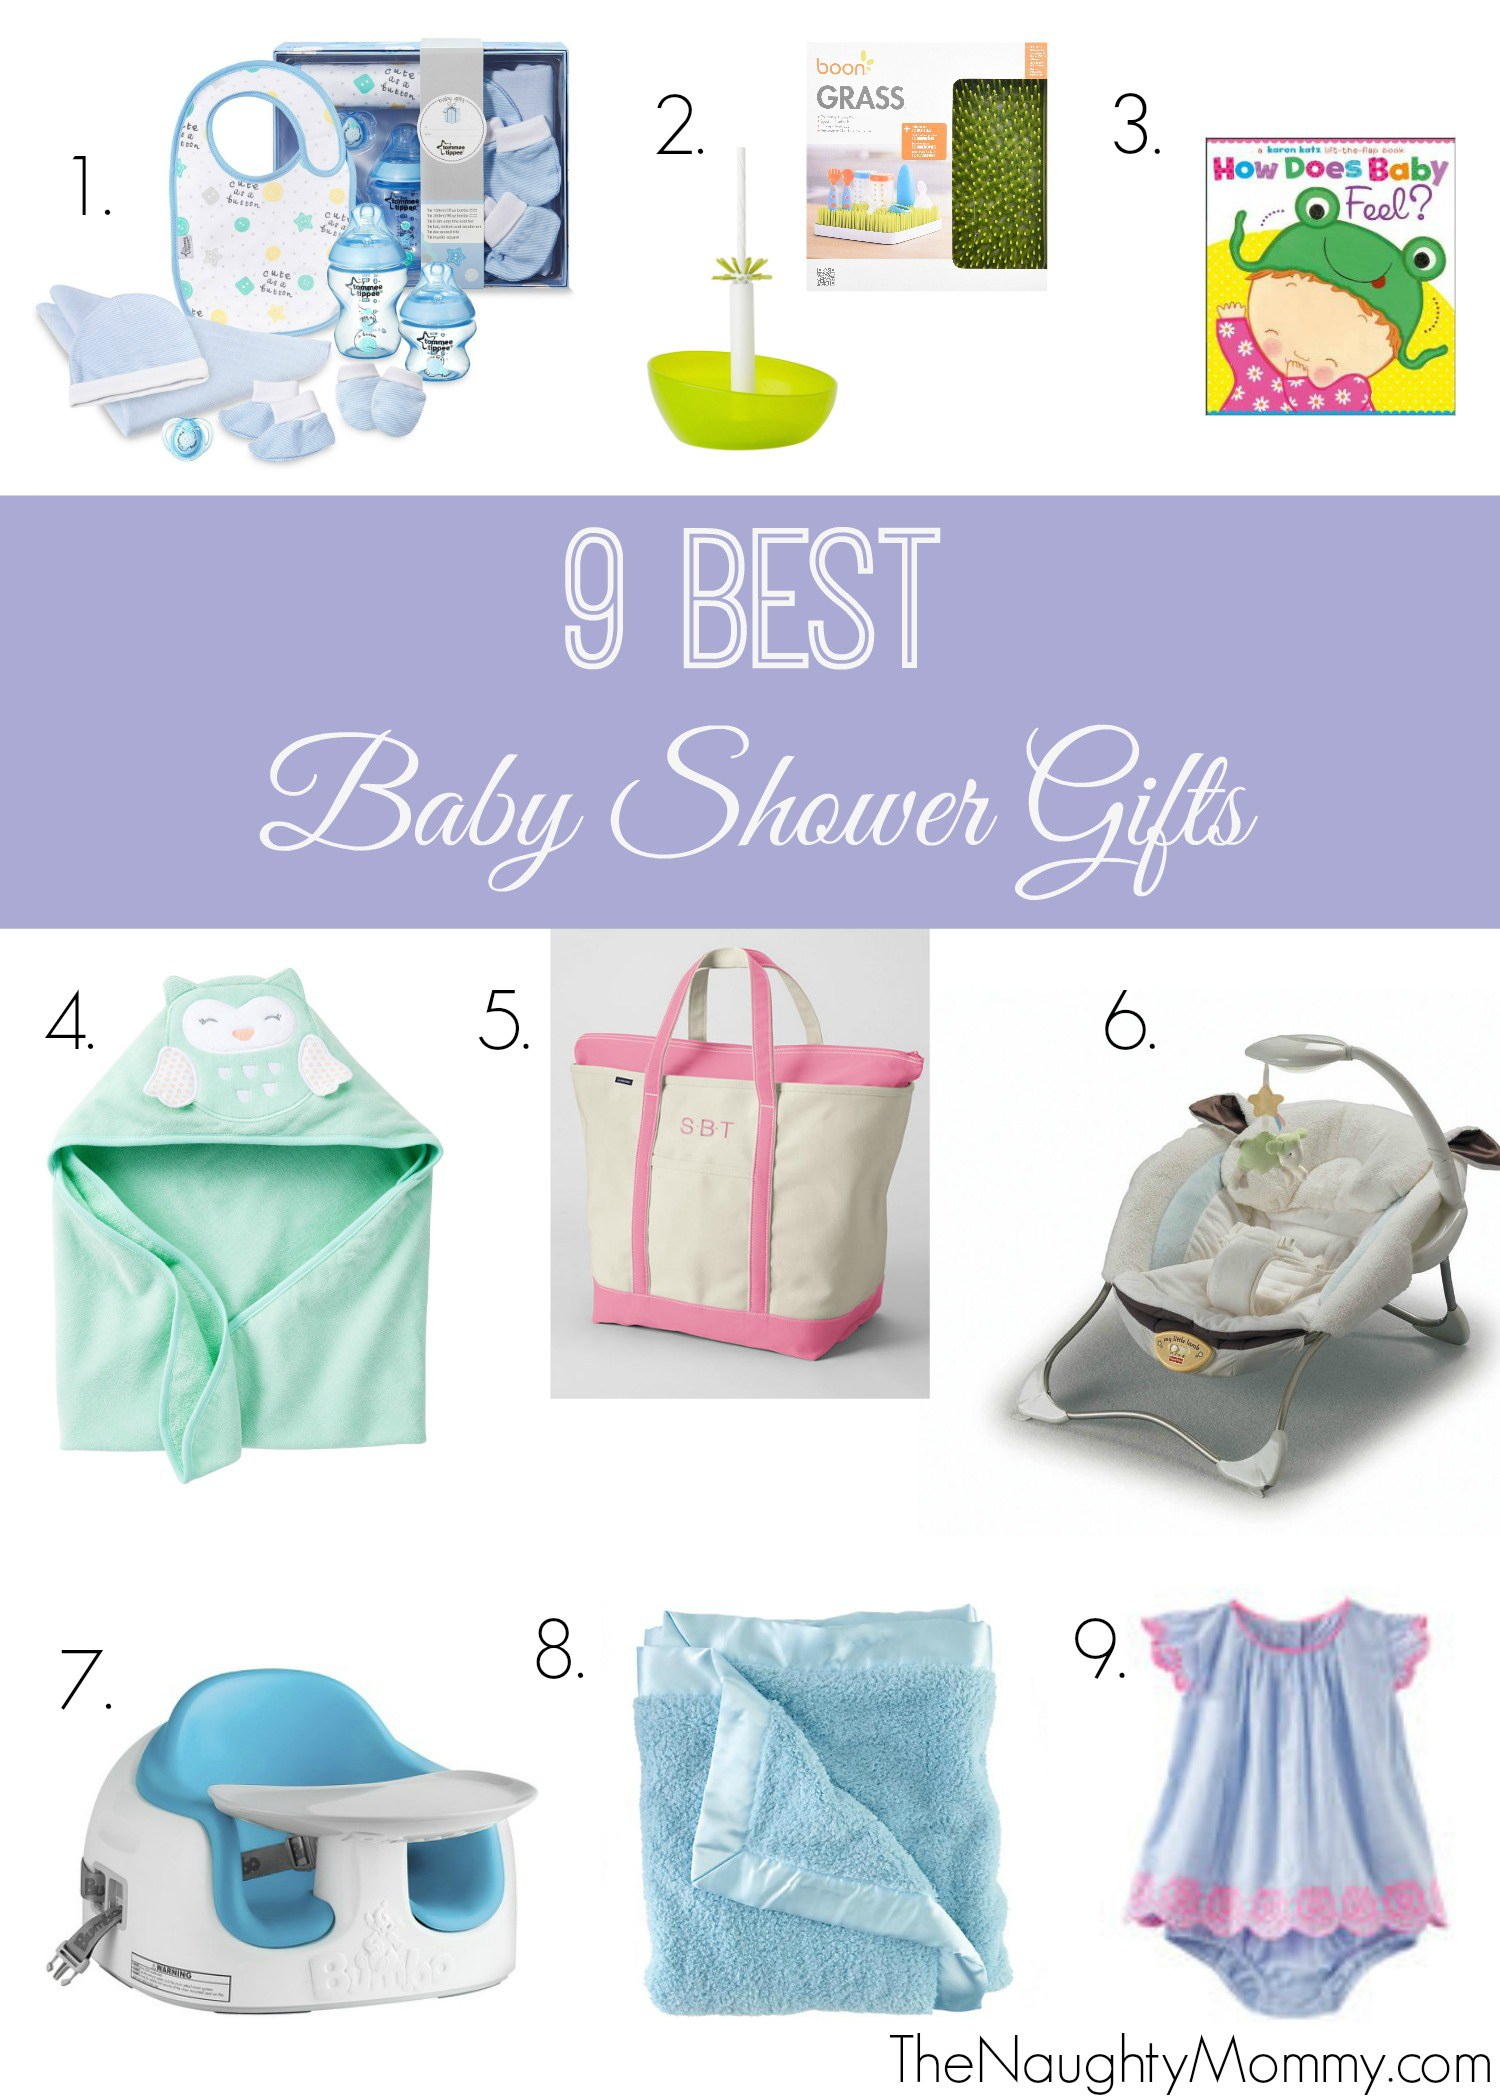 Lovely 9 Best Baby Shower Gifts - The Naughty Mommy for Luxury Useful Baby Shower Gifts